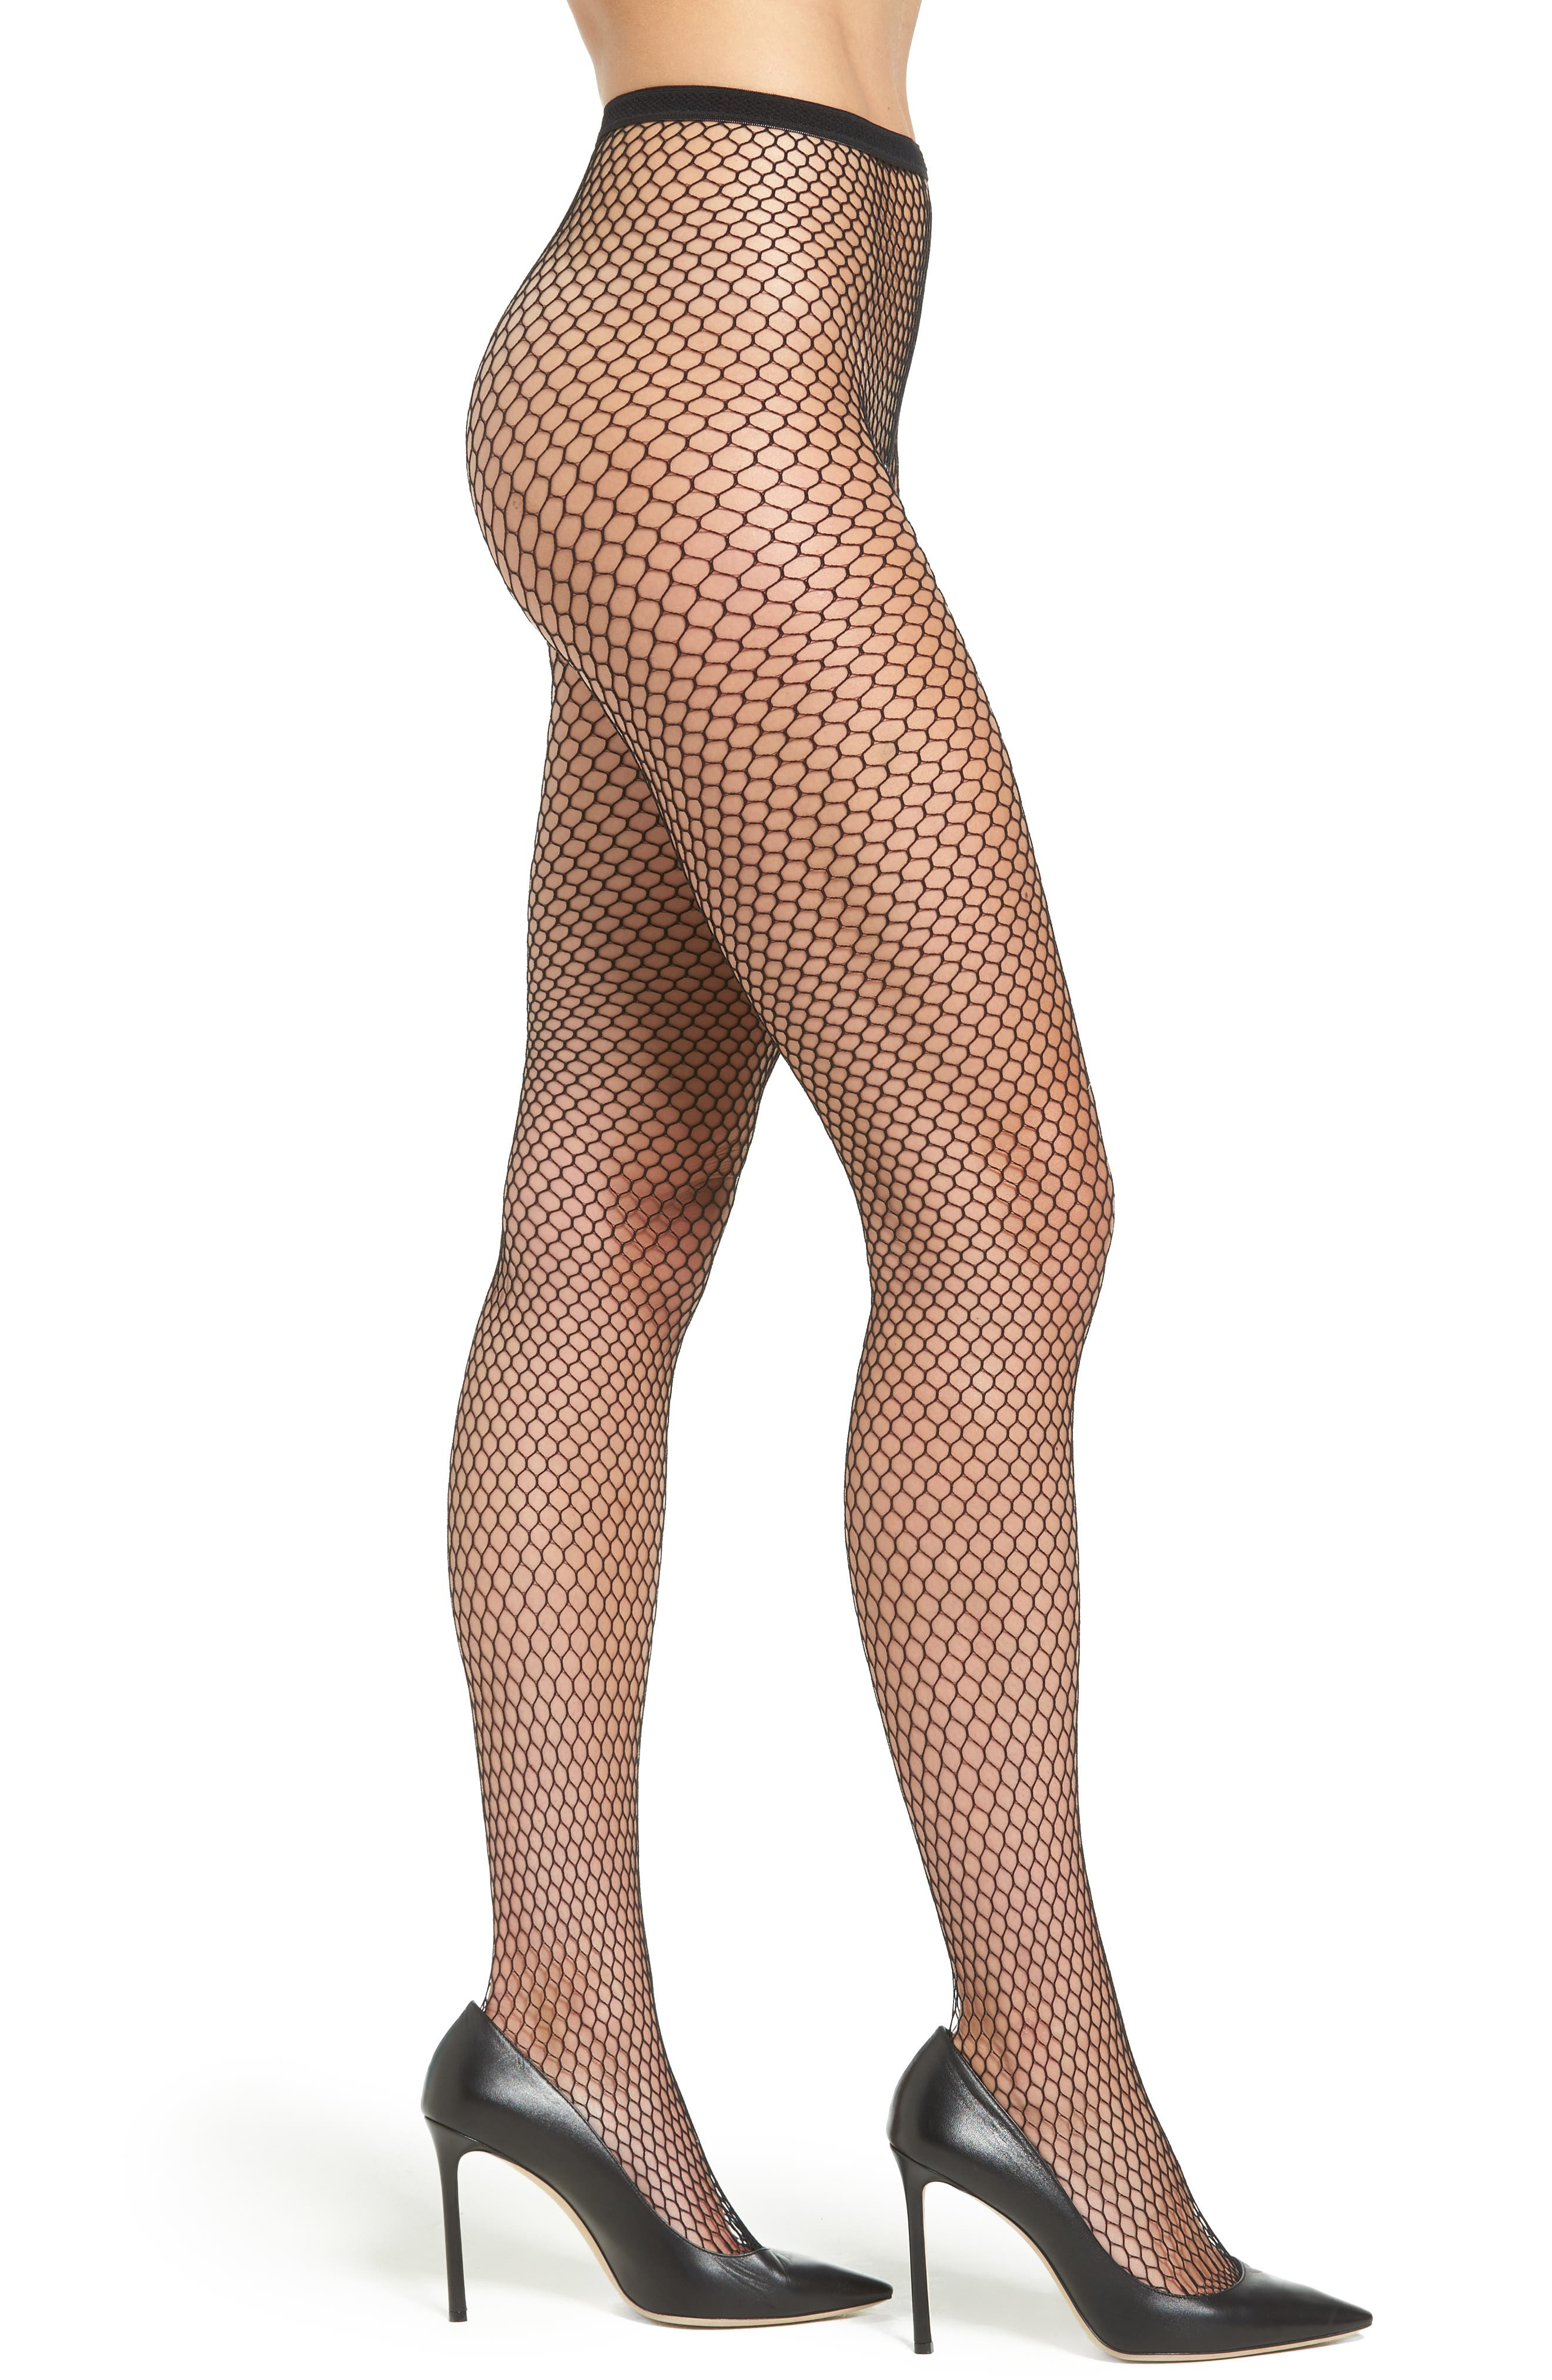 Chelsea28 Hexagon Fishnet Tights